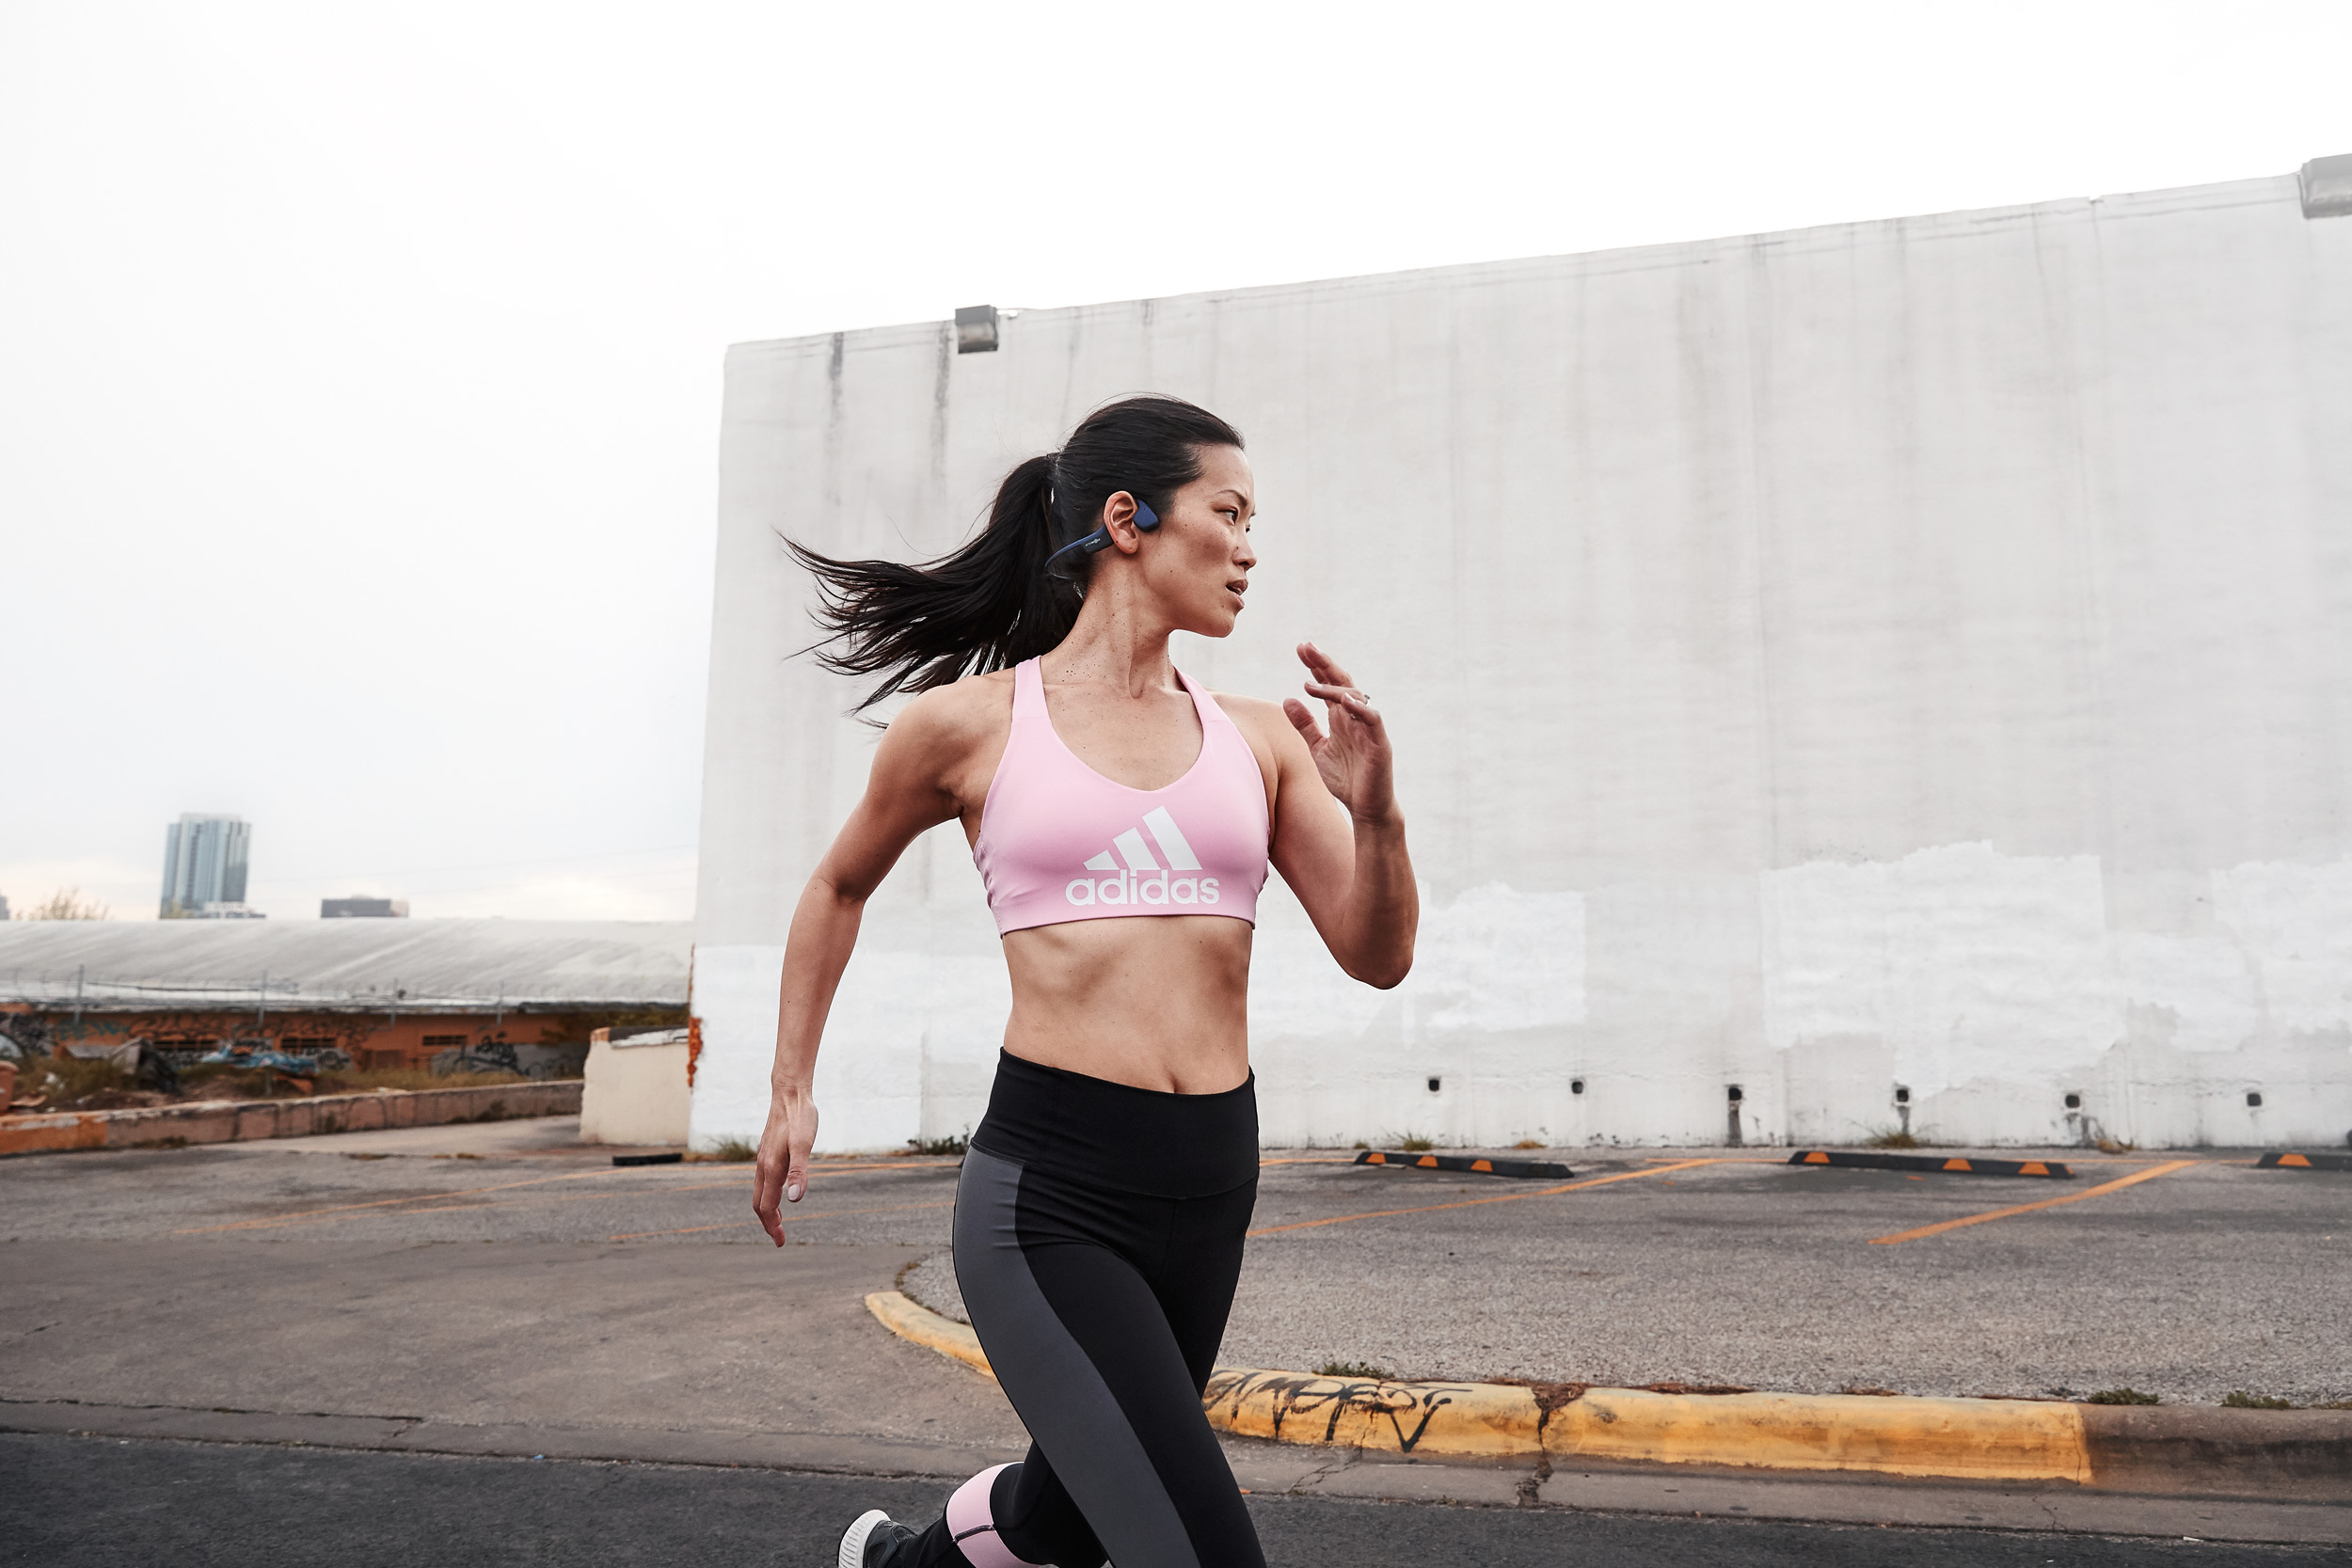 aftershokz-runner-woman-austin.jpg